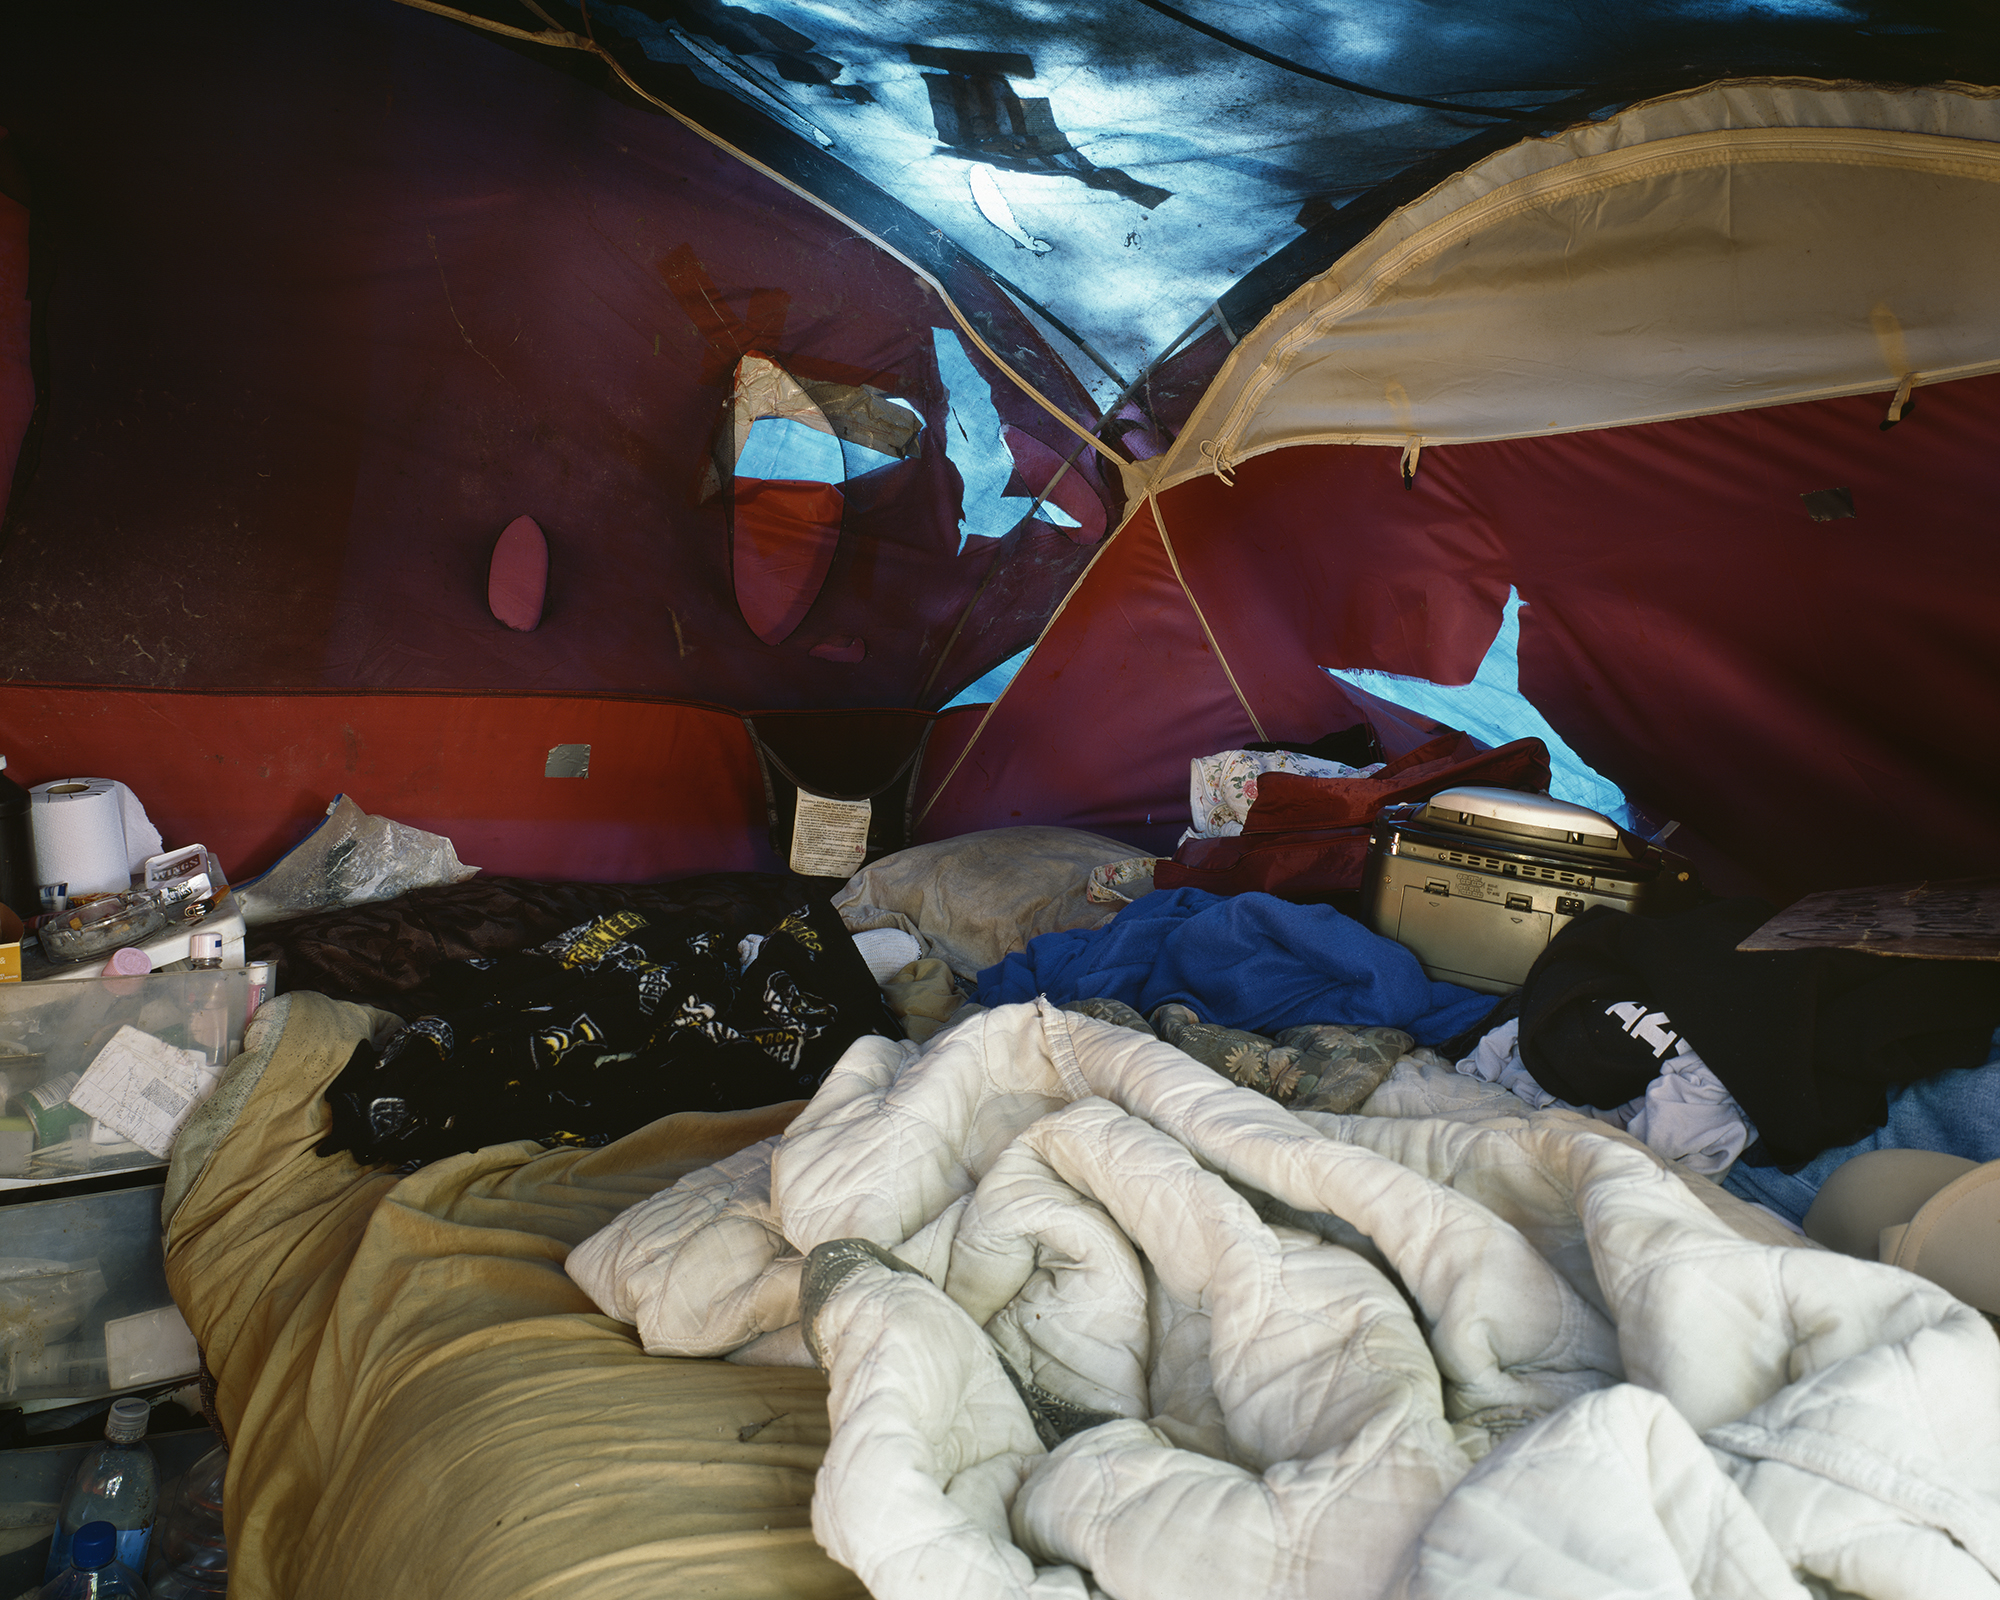 Lee and Deano's Tent